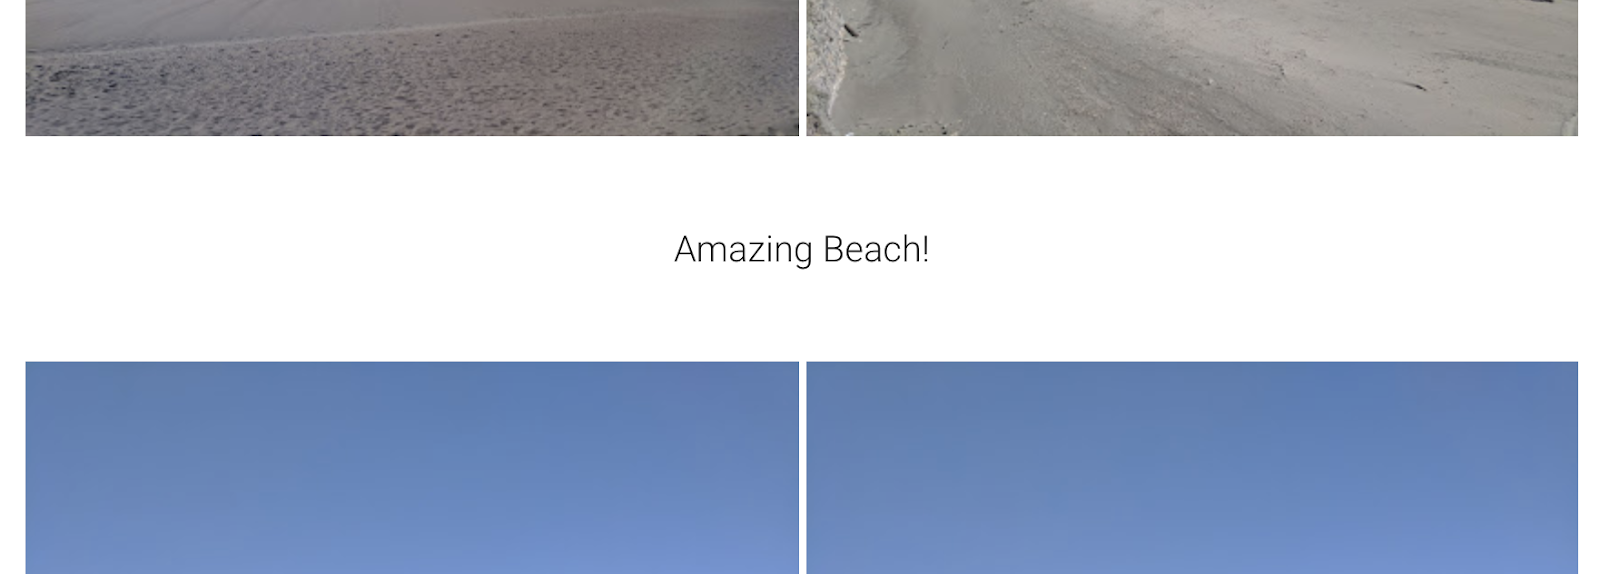 Screenshot of a text enrichment shown in Google Photos